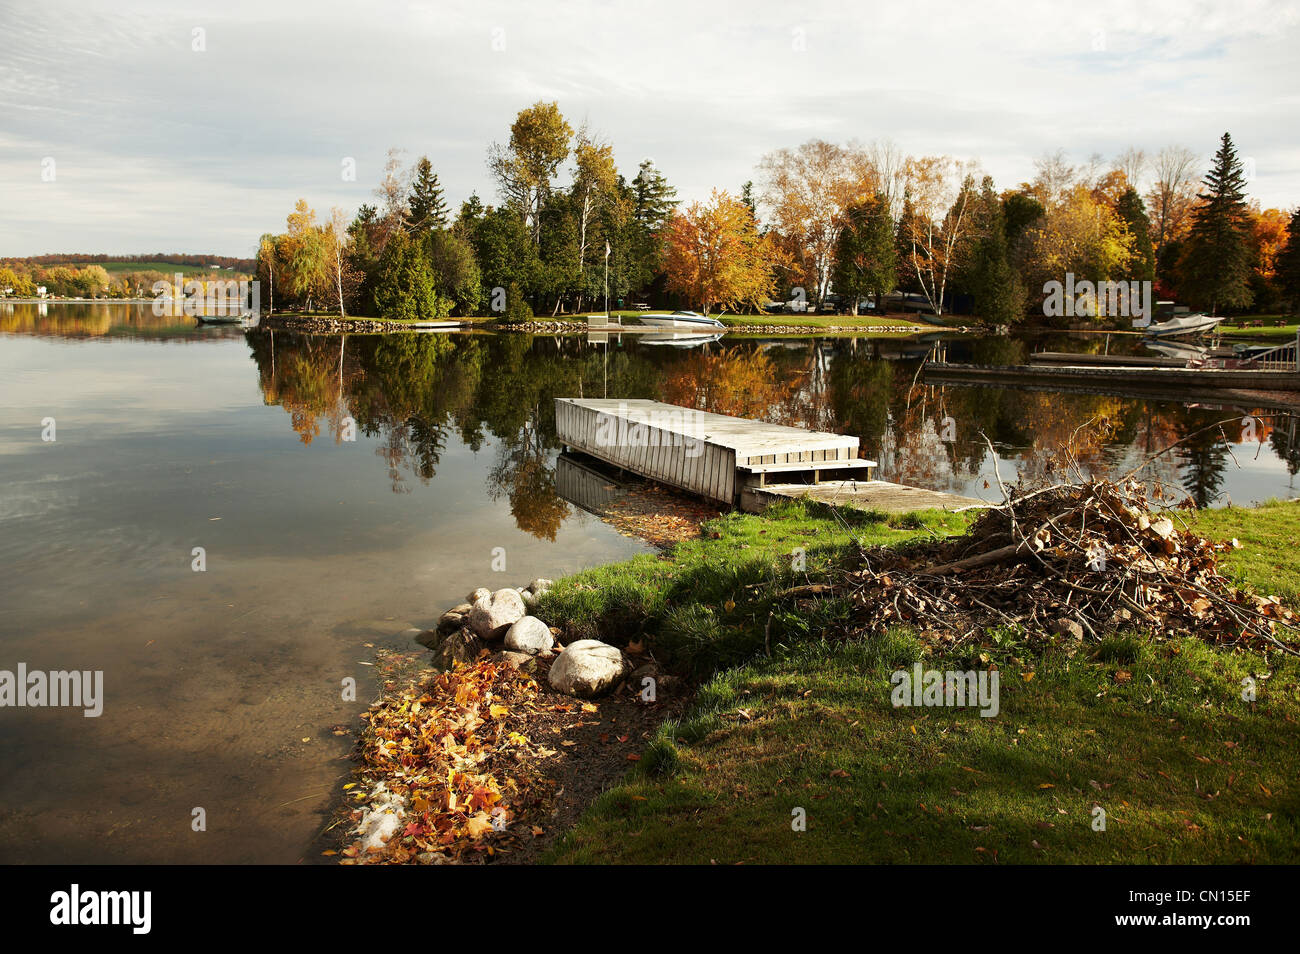 A dock on a lake in cottage country in fall, Peterborough, Ontario - Stock Image